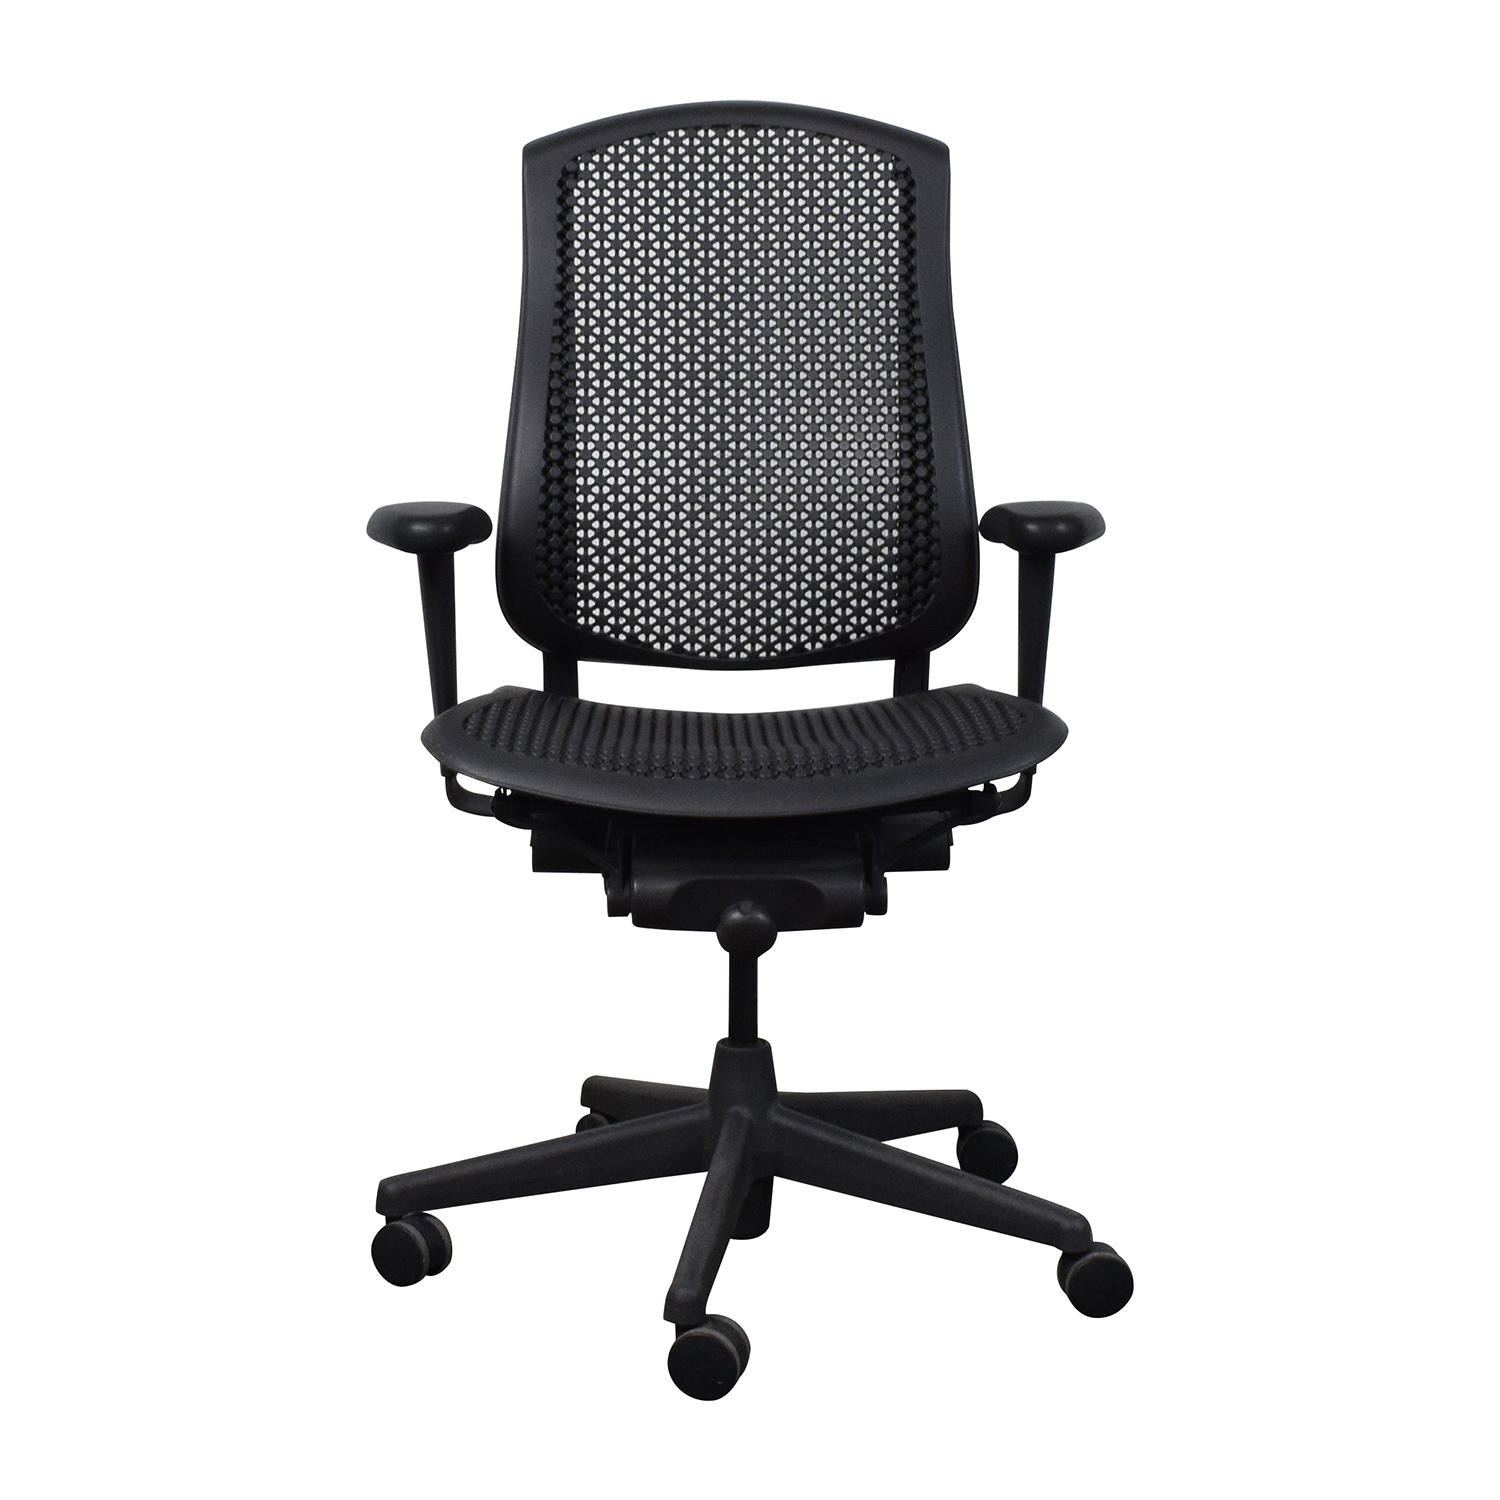 Herman Miller Areo Office Chair sale